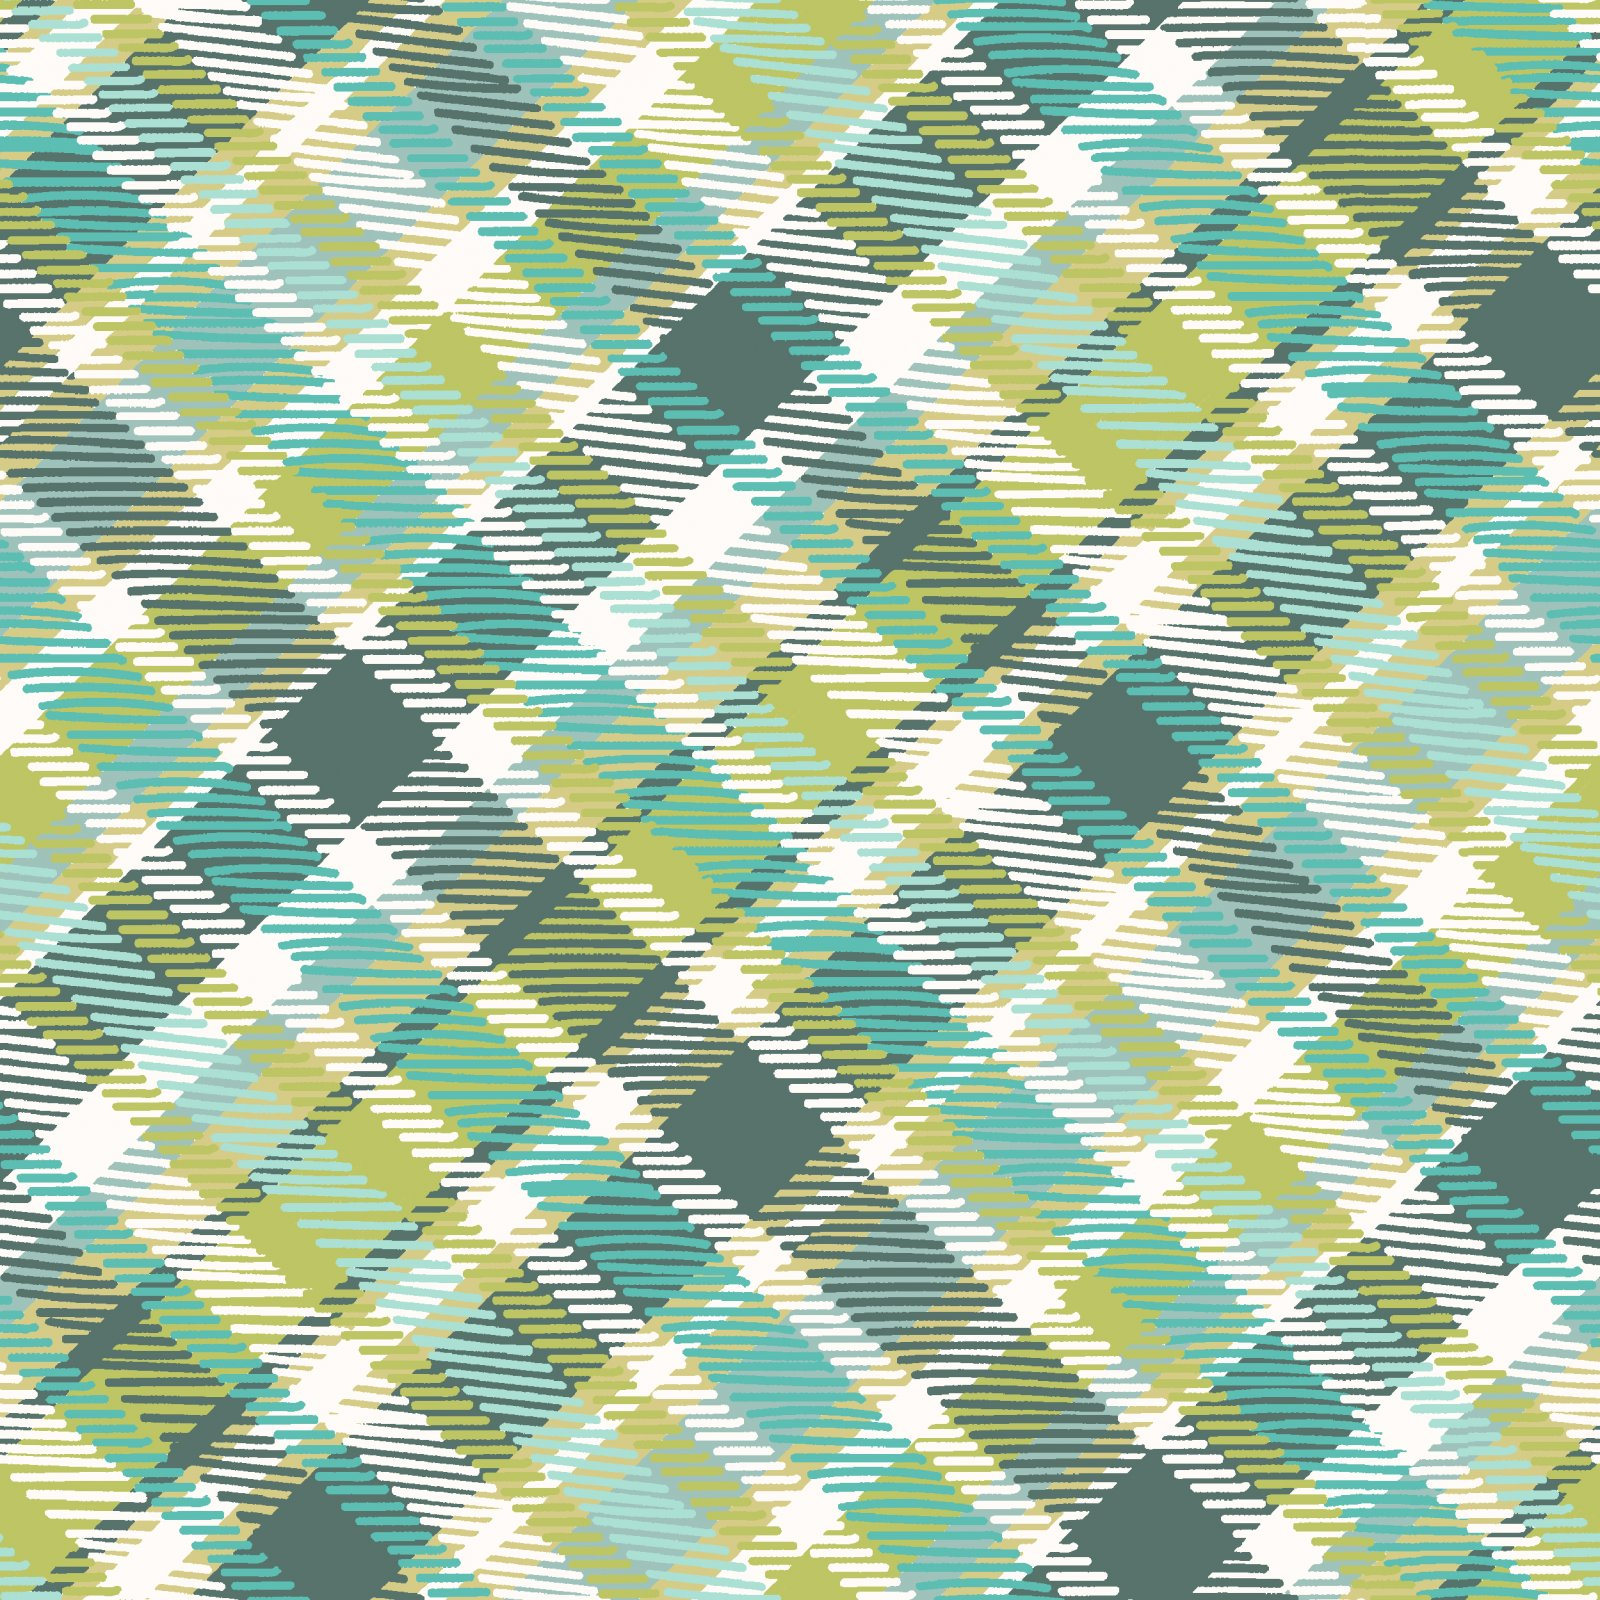 2018 Quilt Minnesota Diagonal Plaid - Light Teal